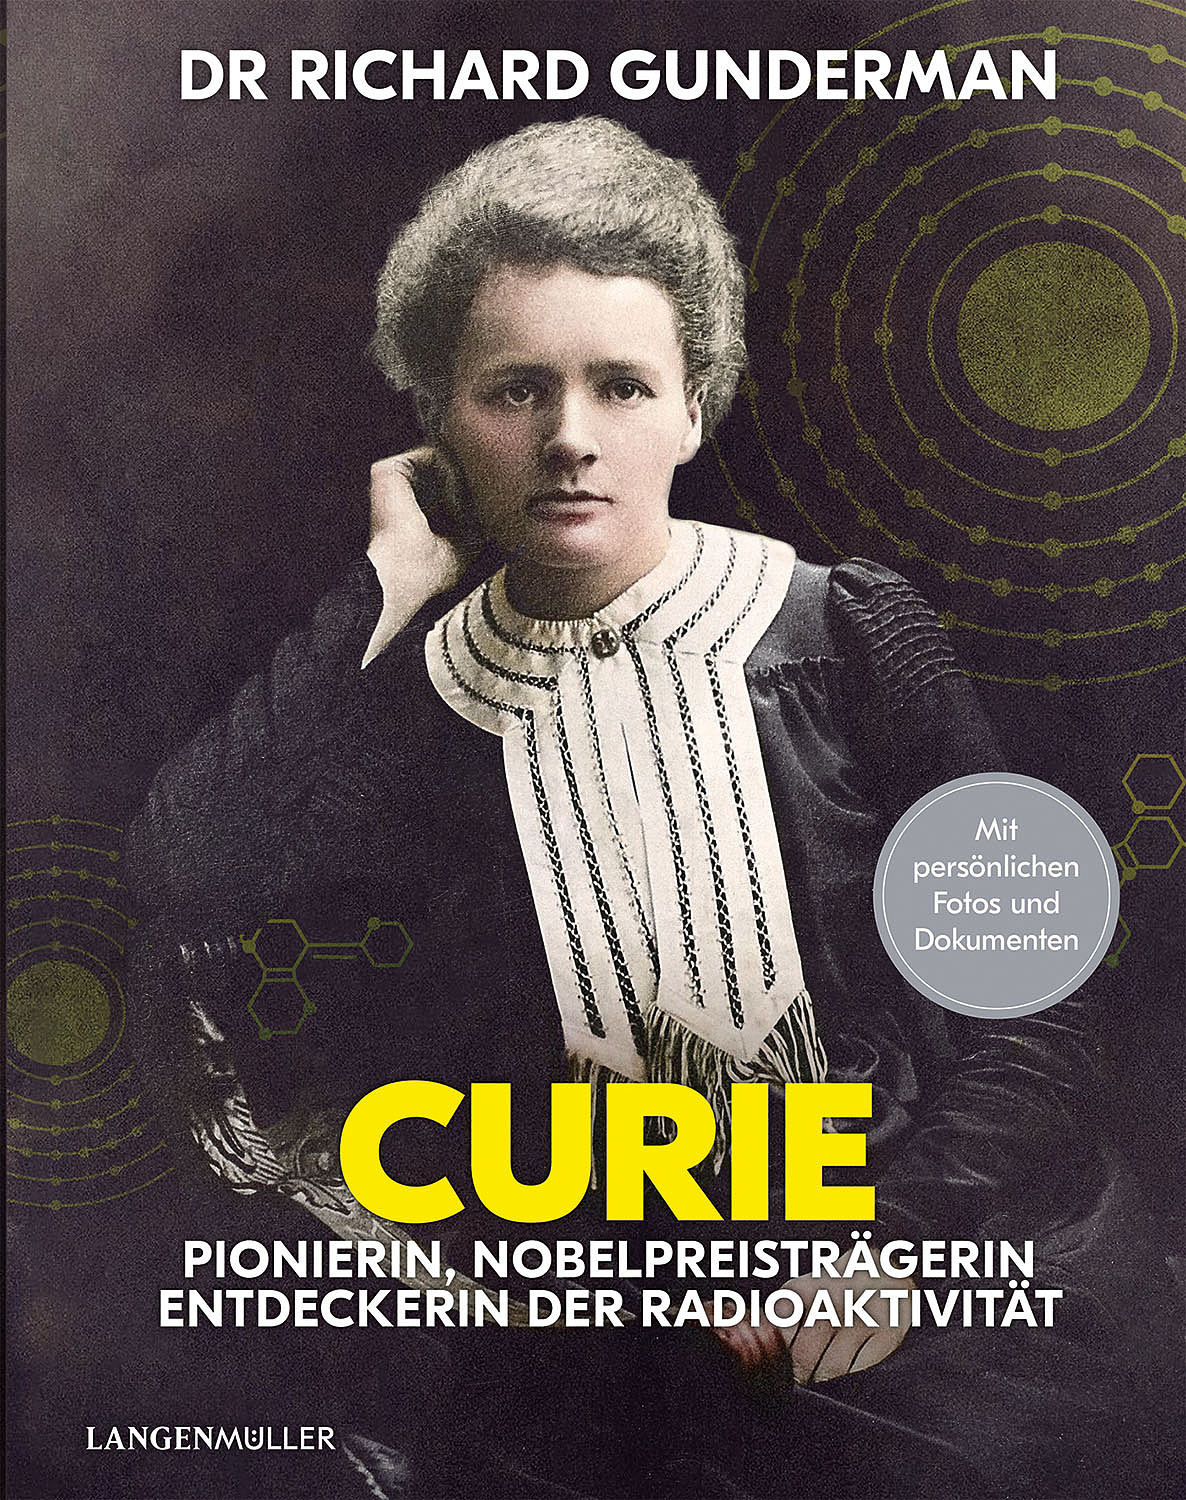 """Book review on """"Currie"""" - the spectrum of science"""